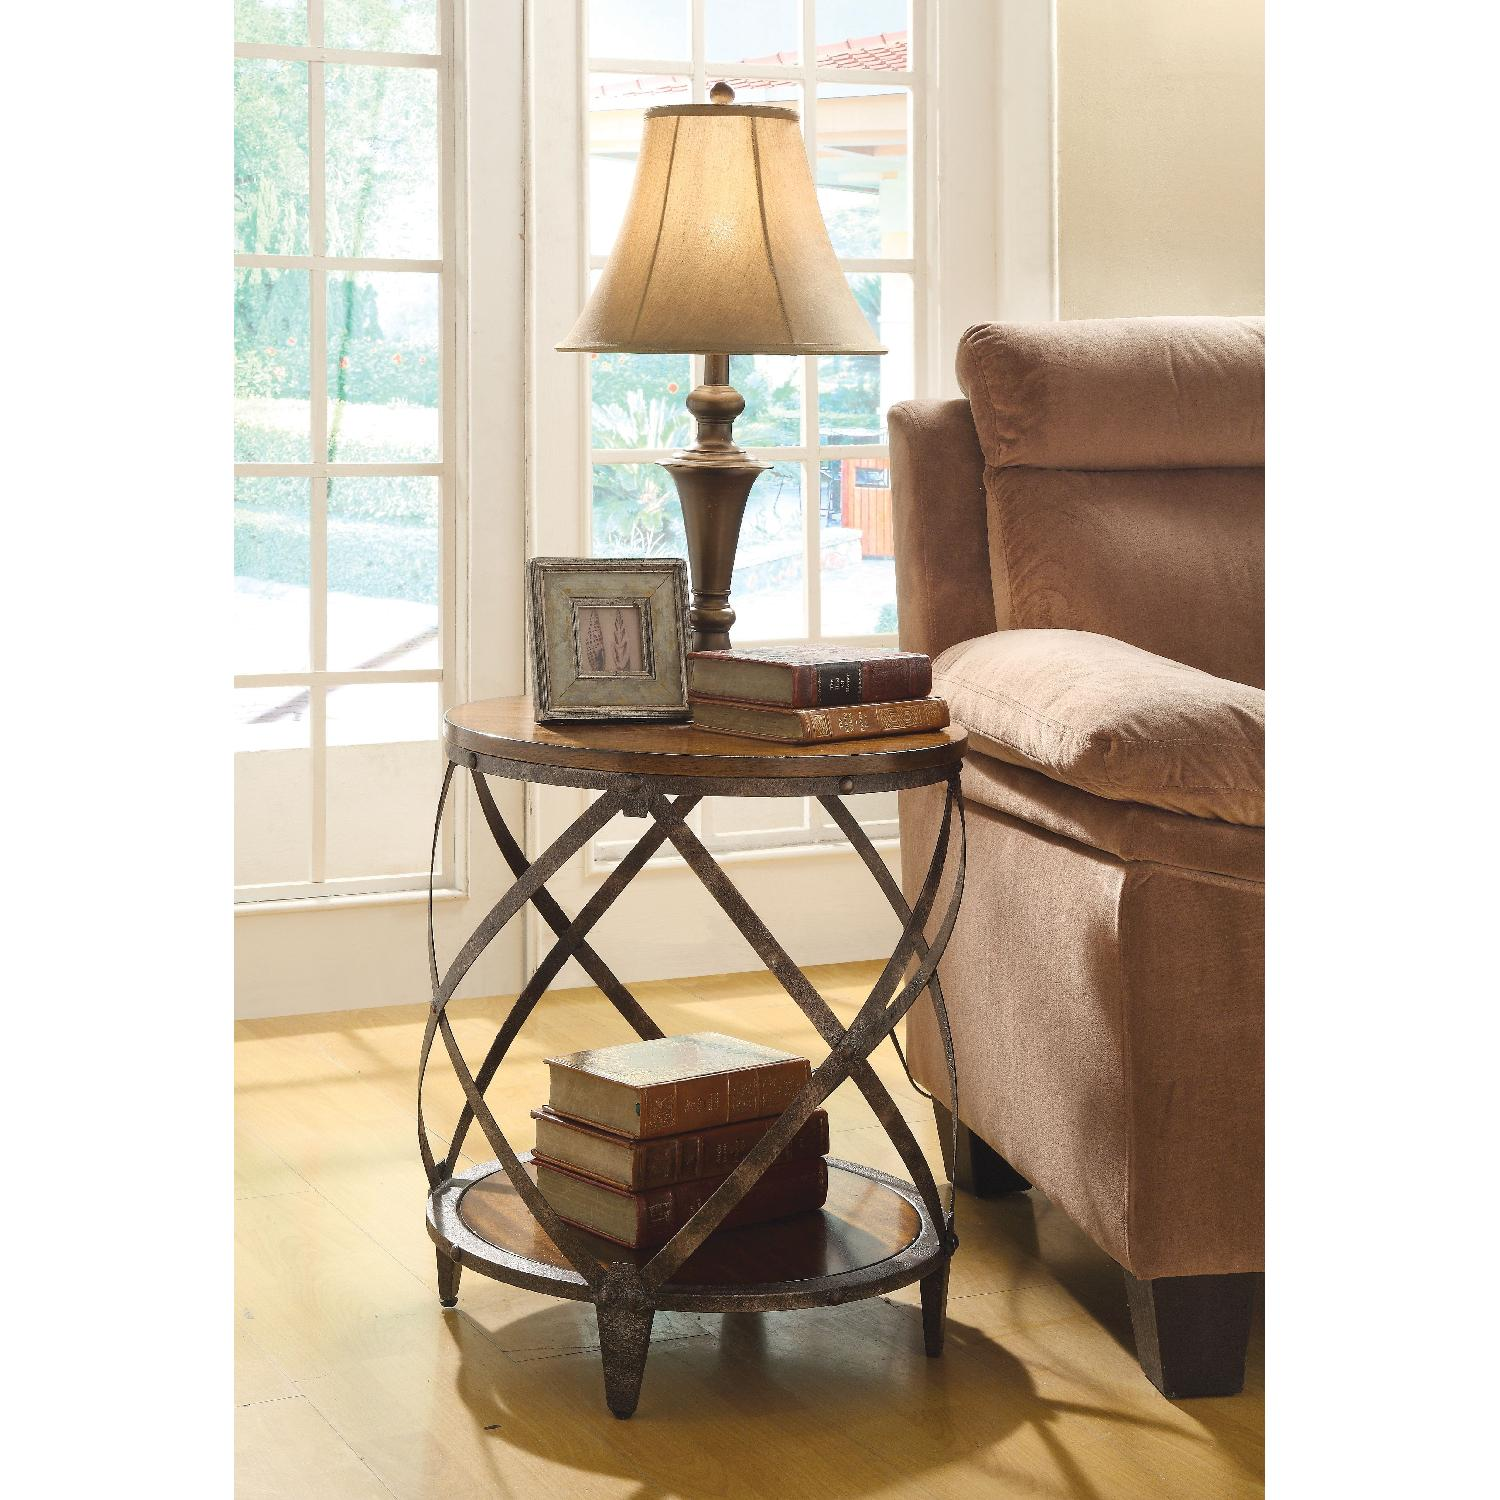 accent side table warm brown spiral metal frame aptdeco glass top nesting tables battery bedroom lamps white patio wine bar cabinet west elm yellow lamp sofa design outdoor grill